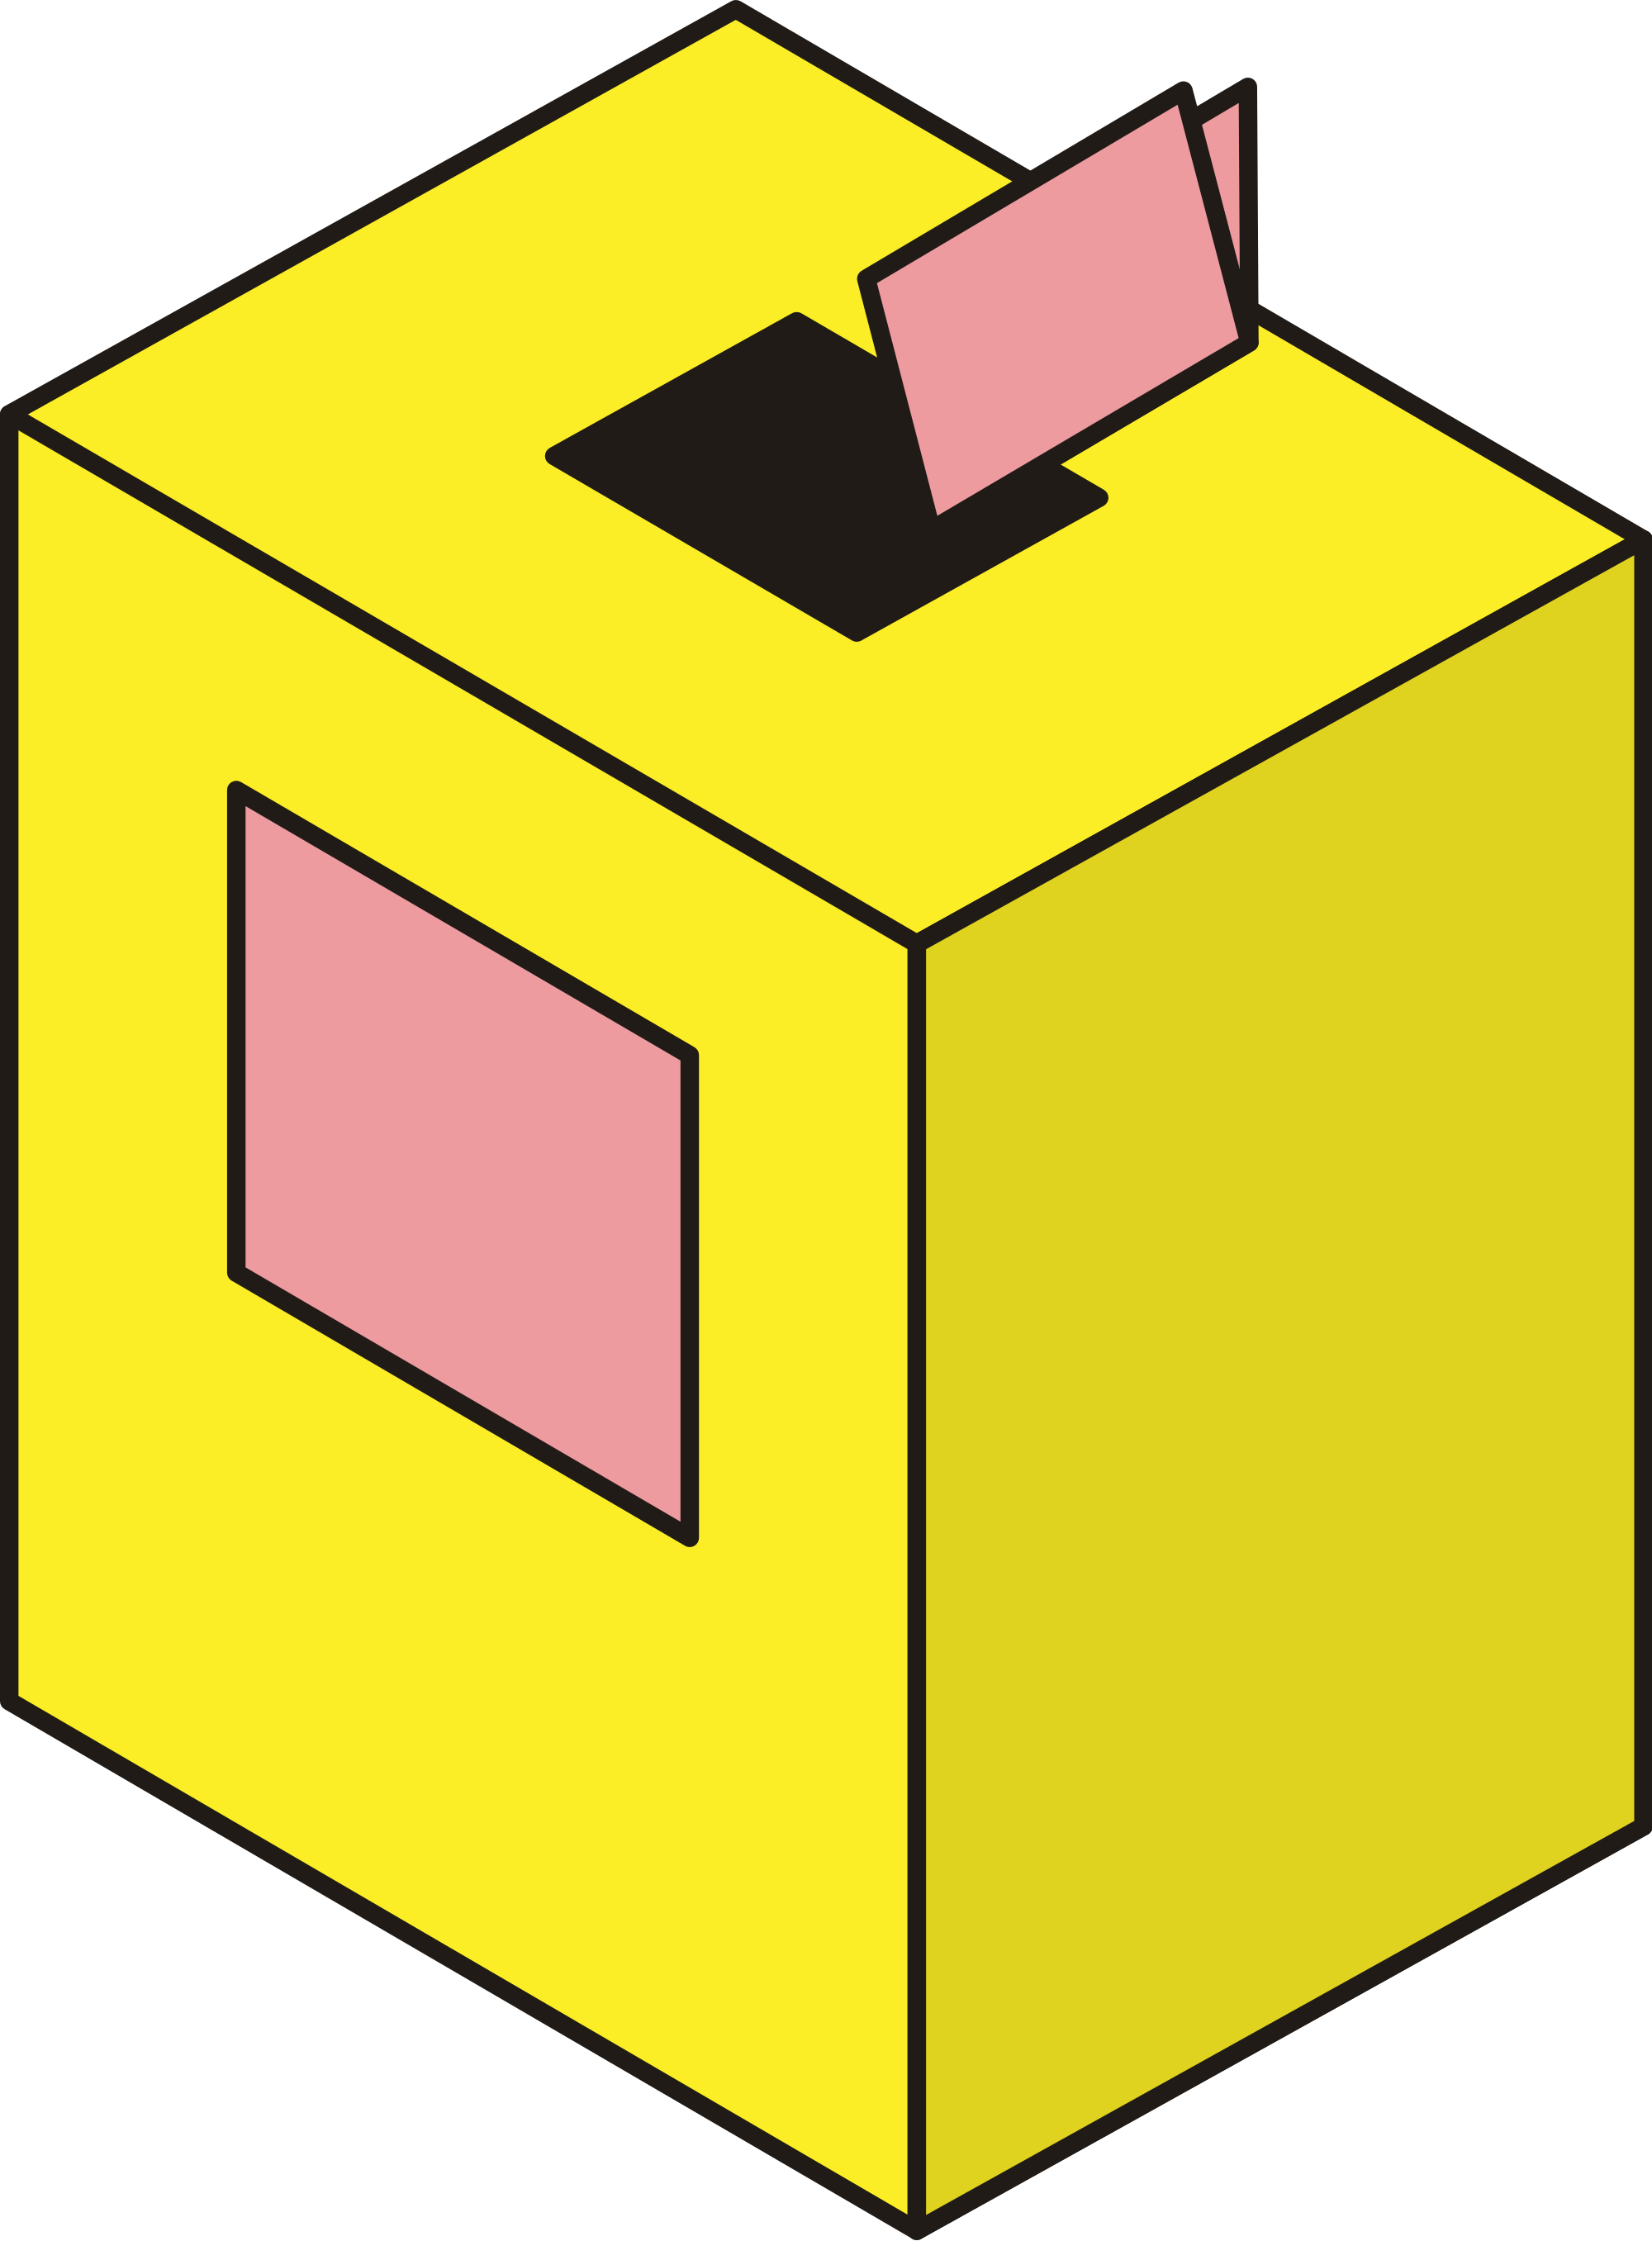 Voting clipart general election. I didn t vote